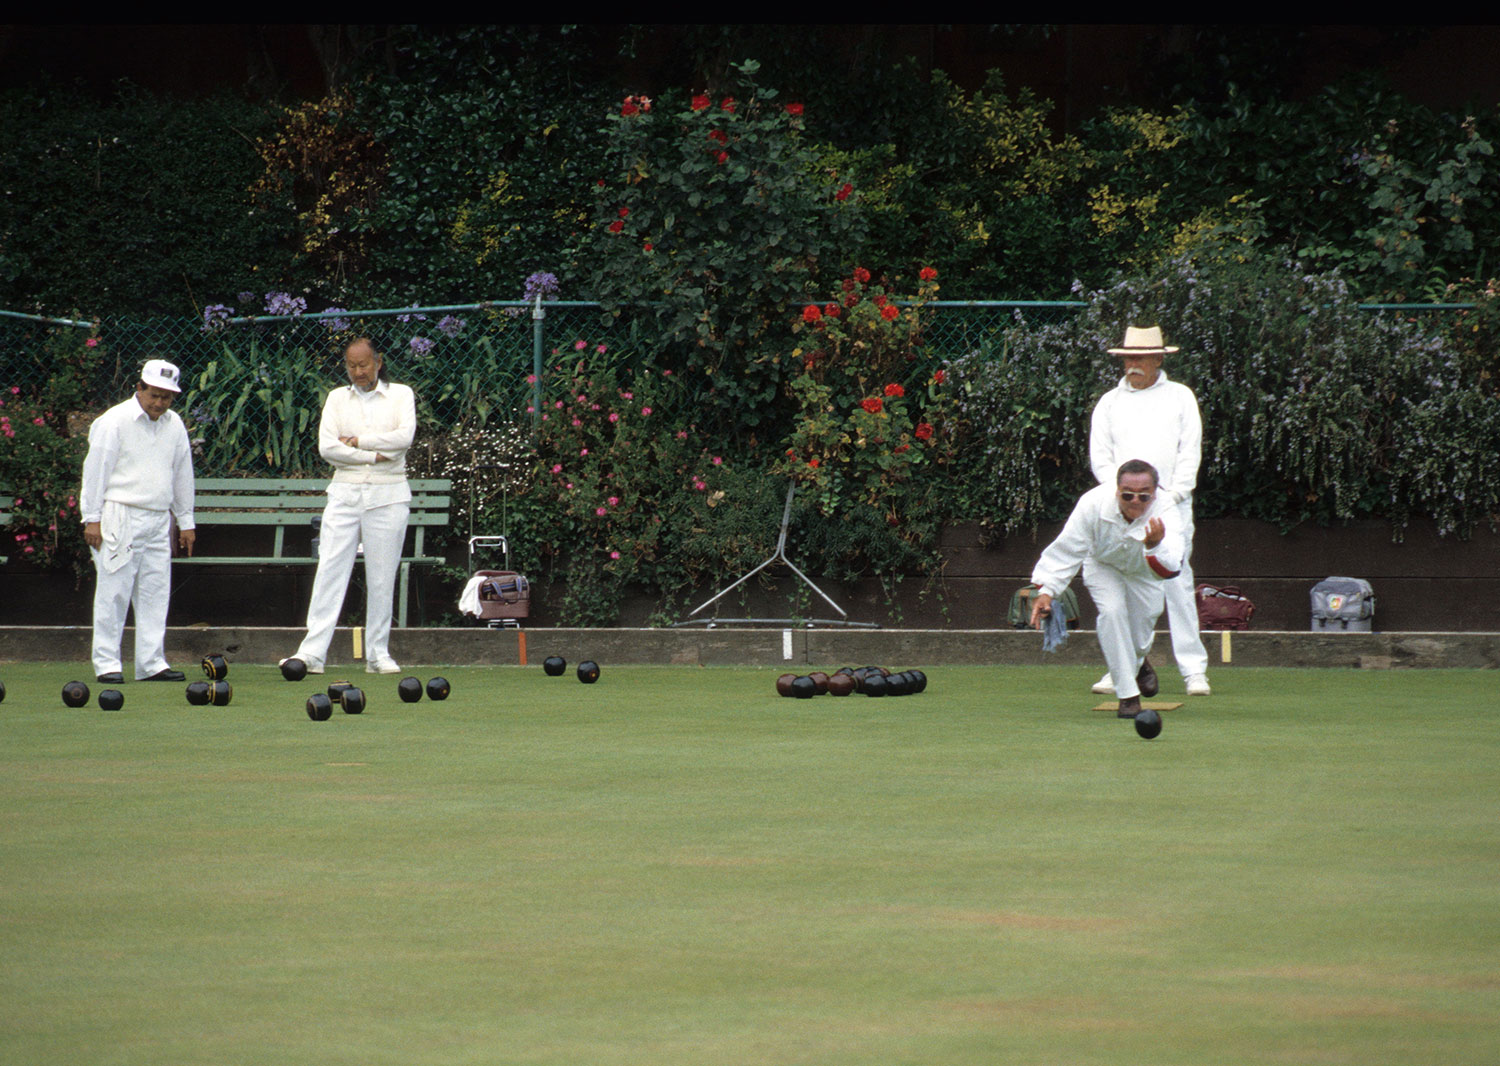 Lawn Bowlers in Golden Gate Park 1999